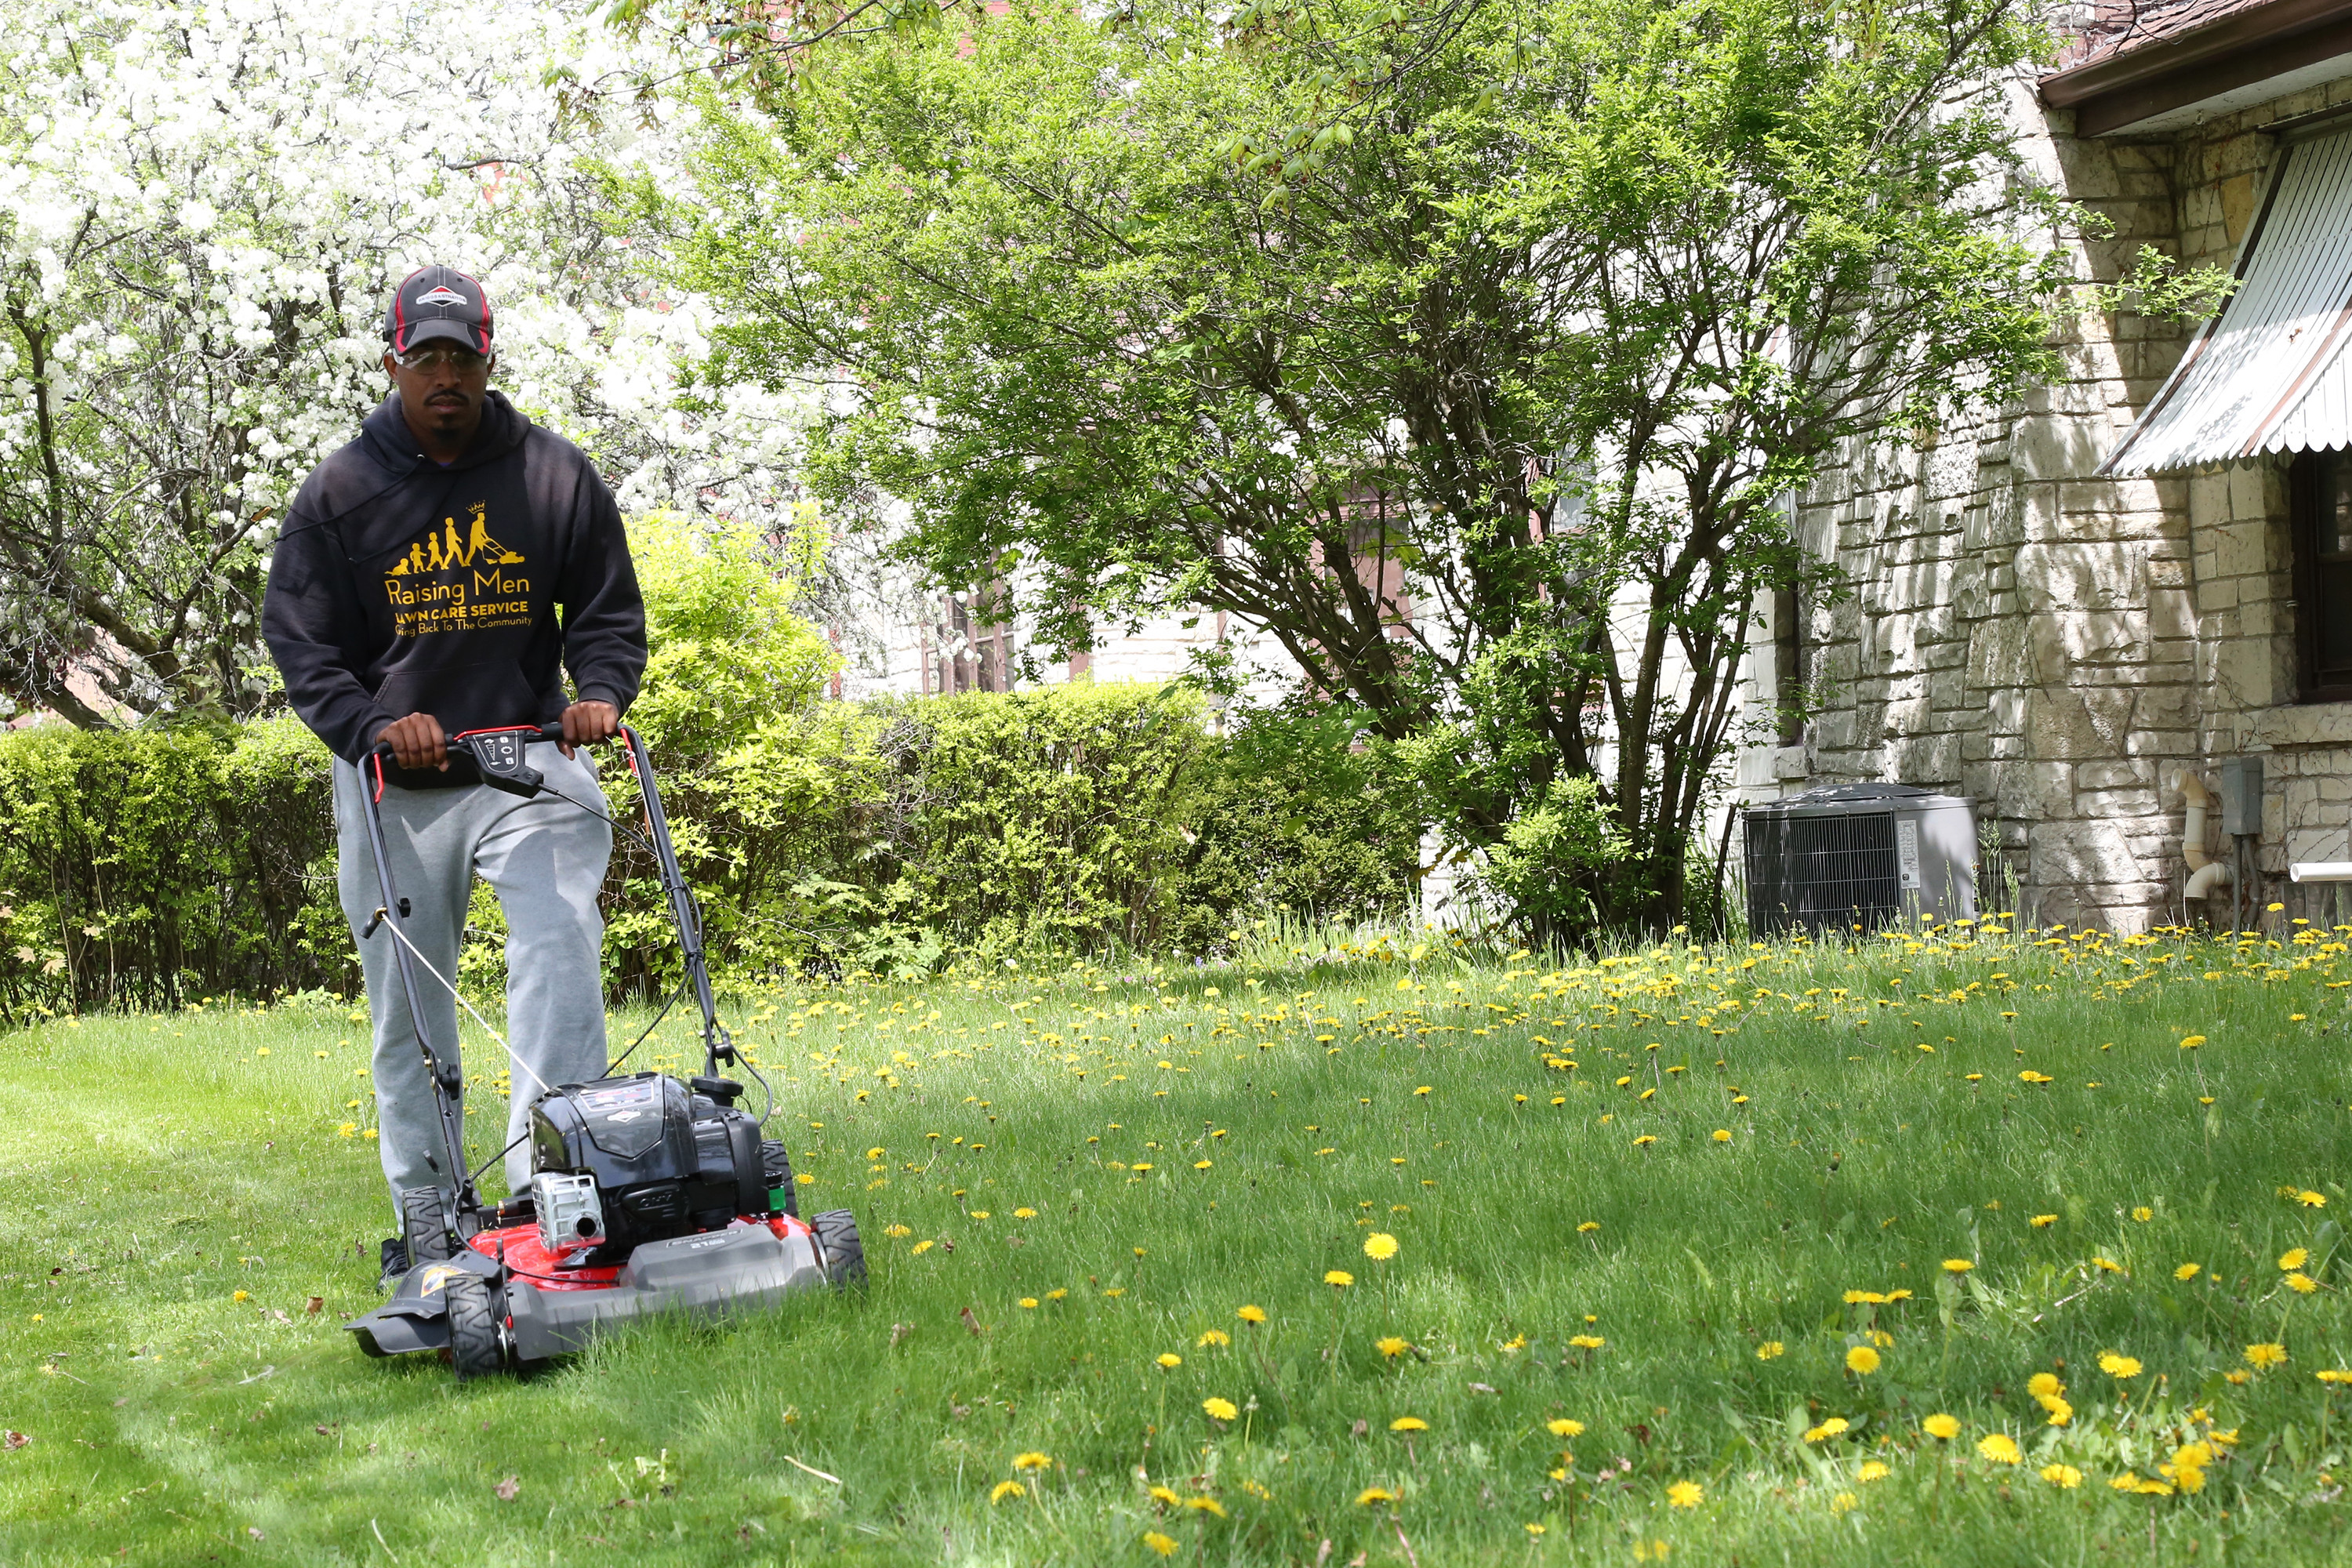 Rodney Smith Jr Is Traveling To All 50 States Mowing